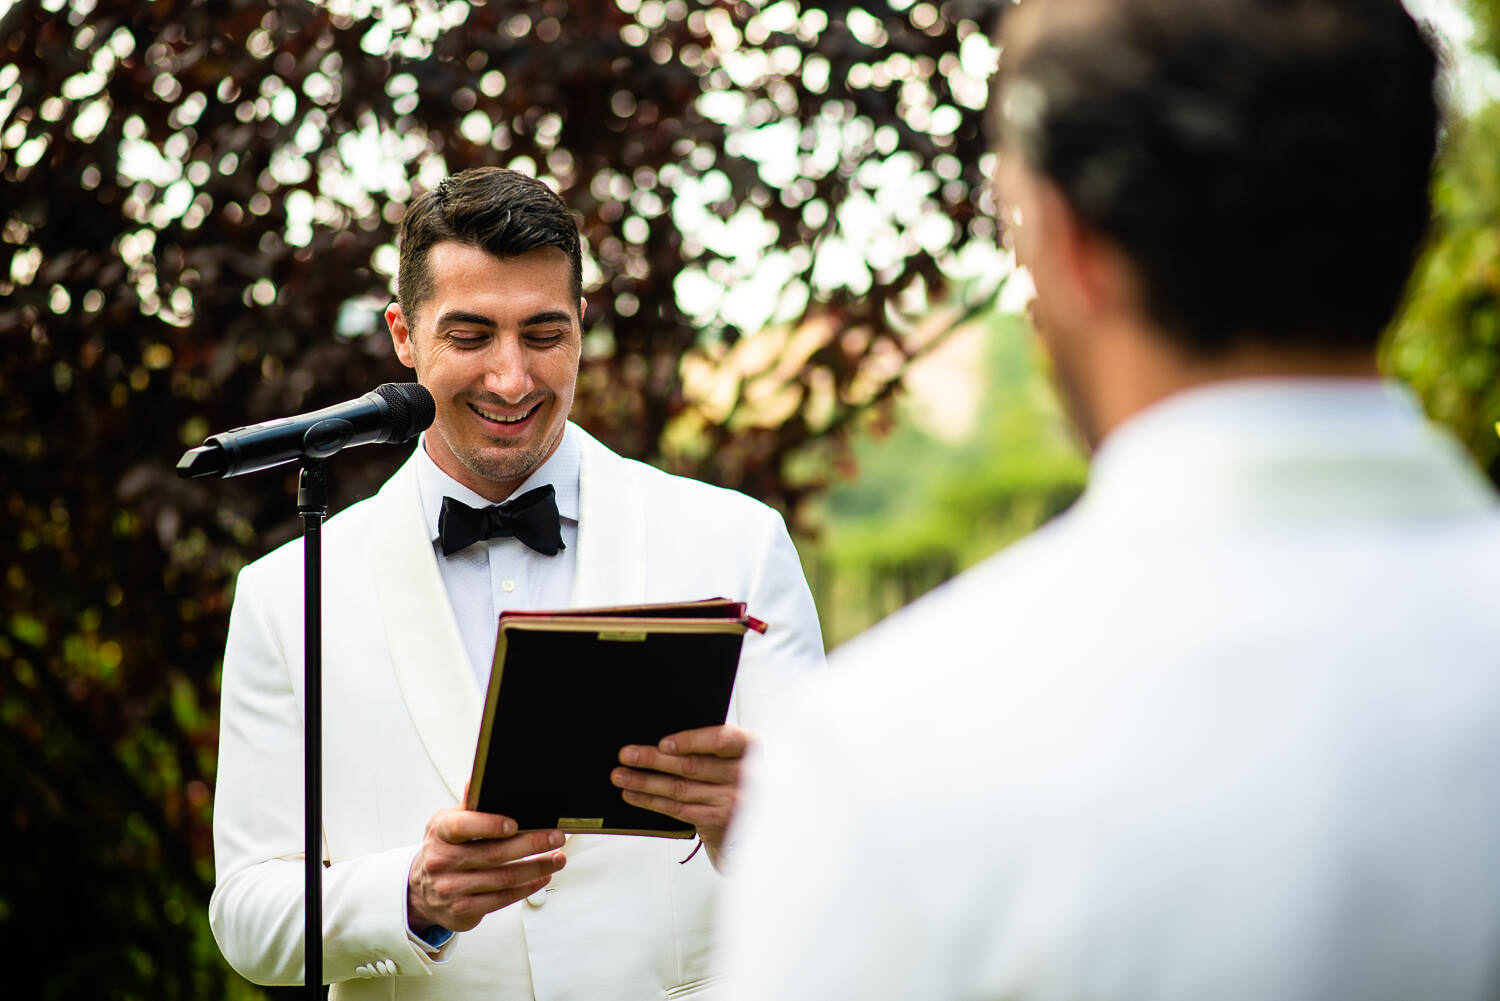 vows during gas wedding ceremony at Biblioteca Almirall